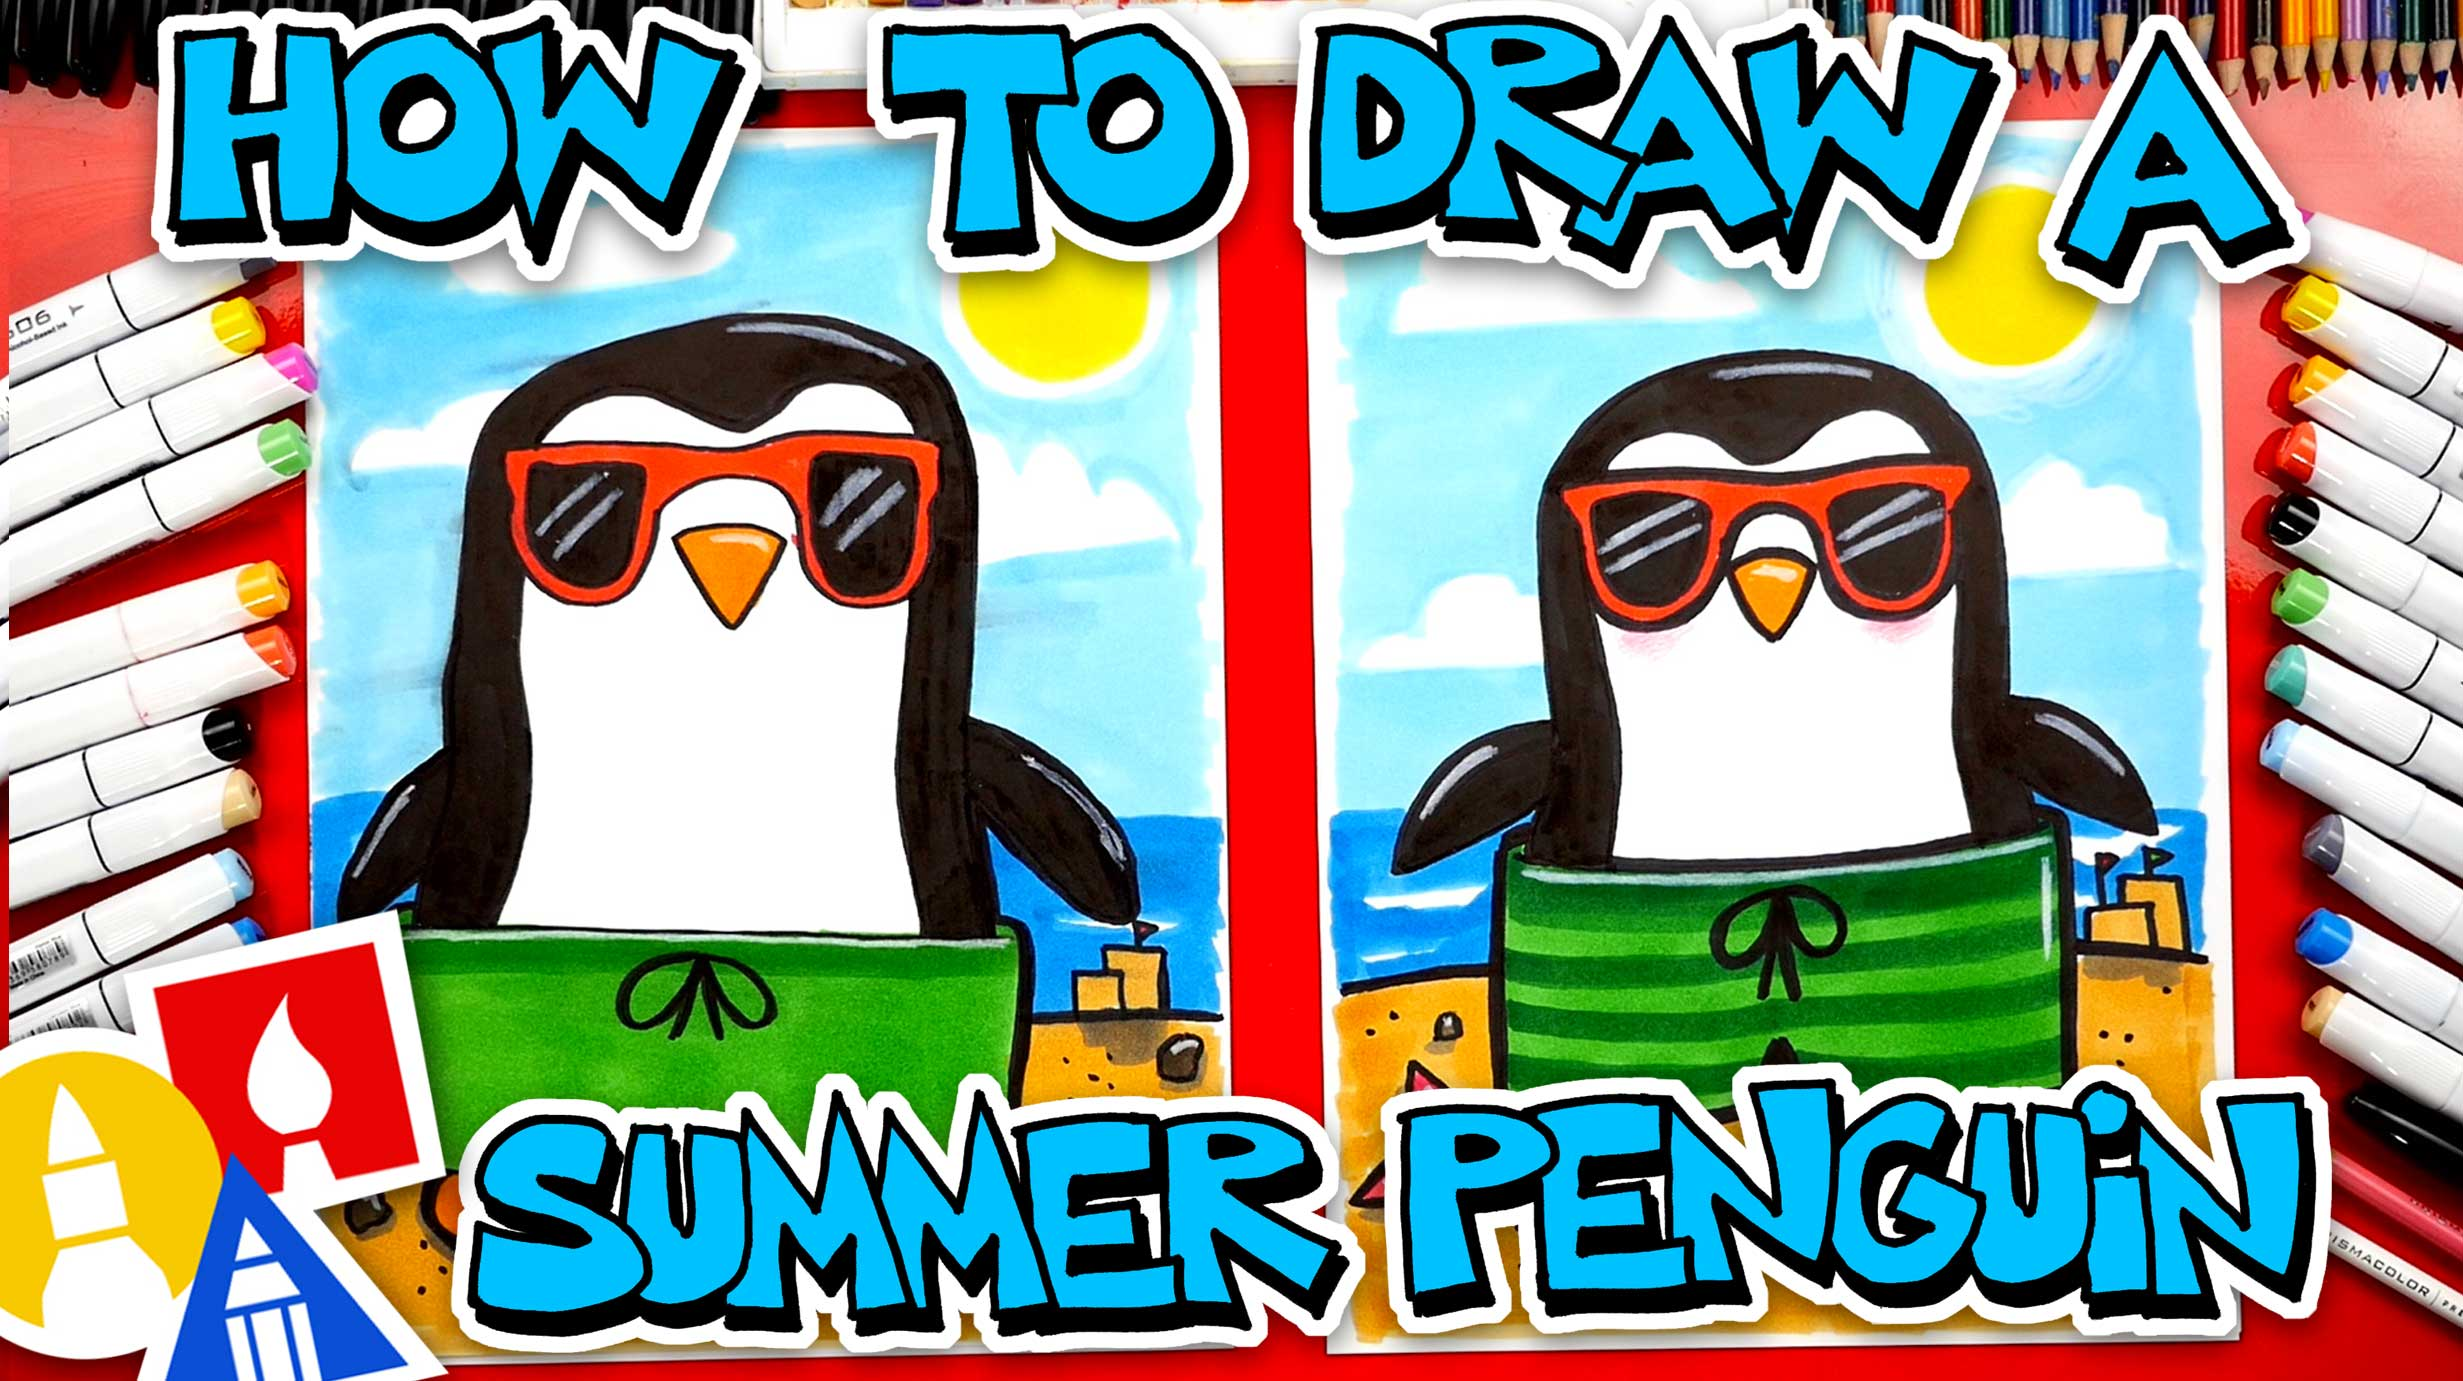 How To Draw A Summer Penguin Wearing Sunglasses And A Swimsuit - Art For Kids Hub